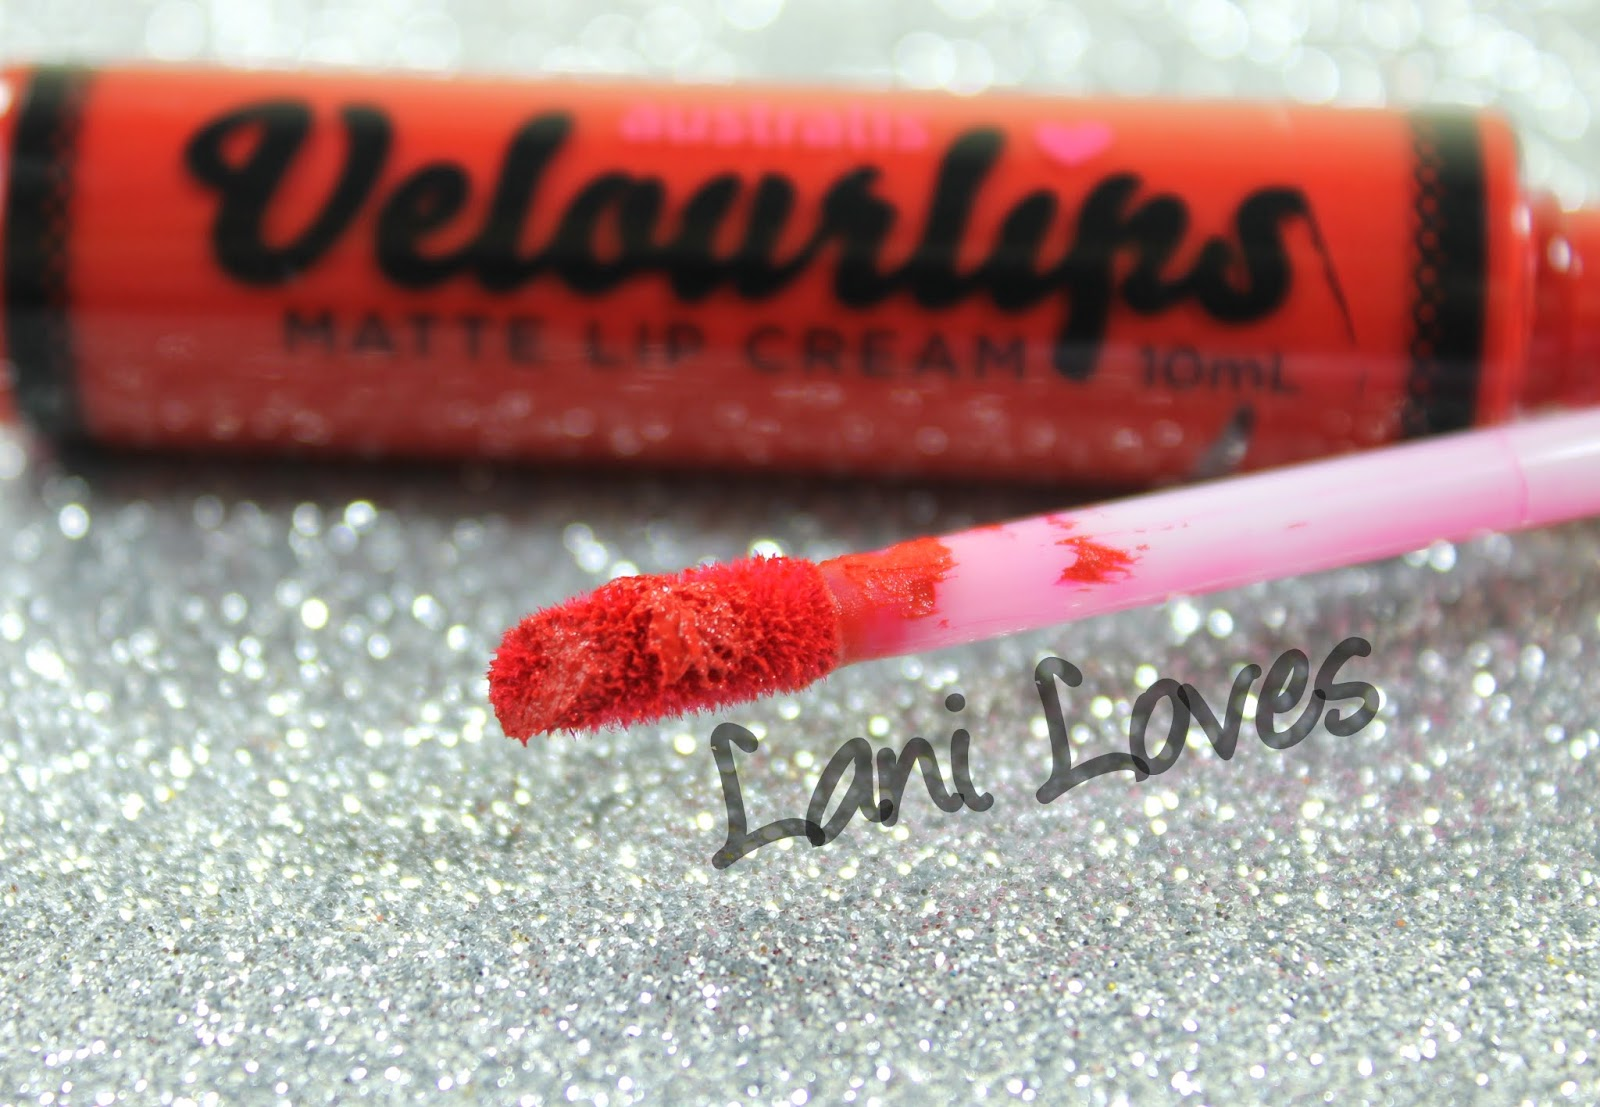 Australis Velourlips - NY-CEE Swatches & Review